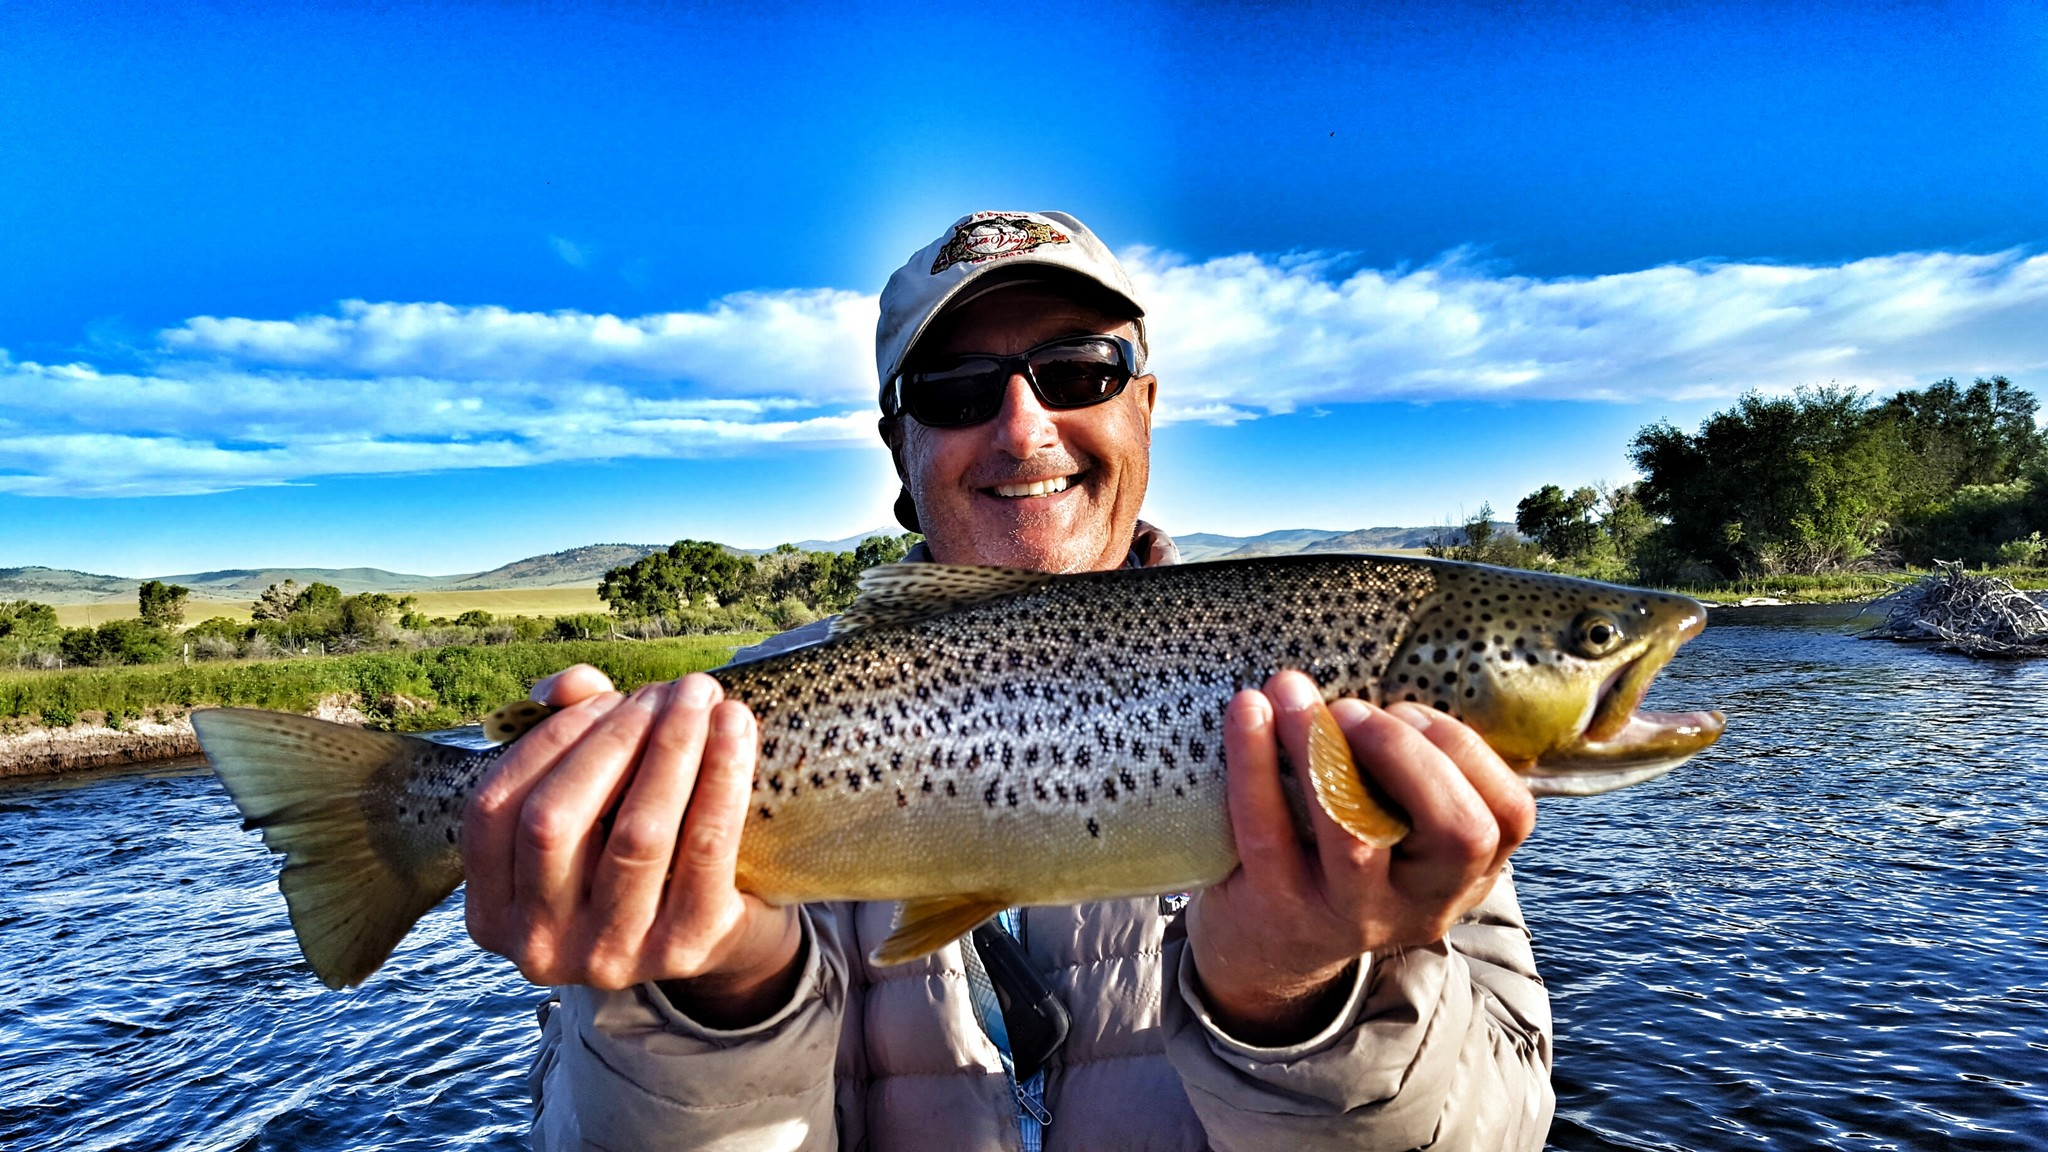 Madison river hatches fly fishing the madison river mrfc for Hatch fly fishing